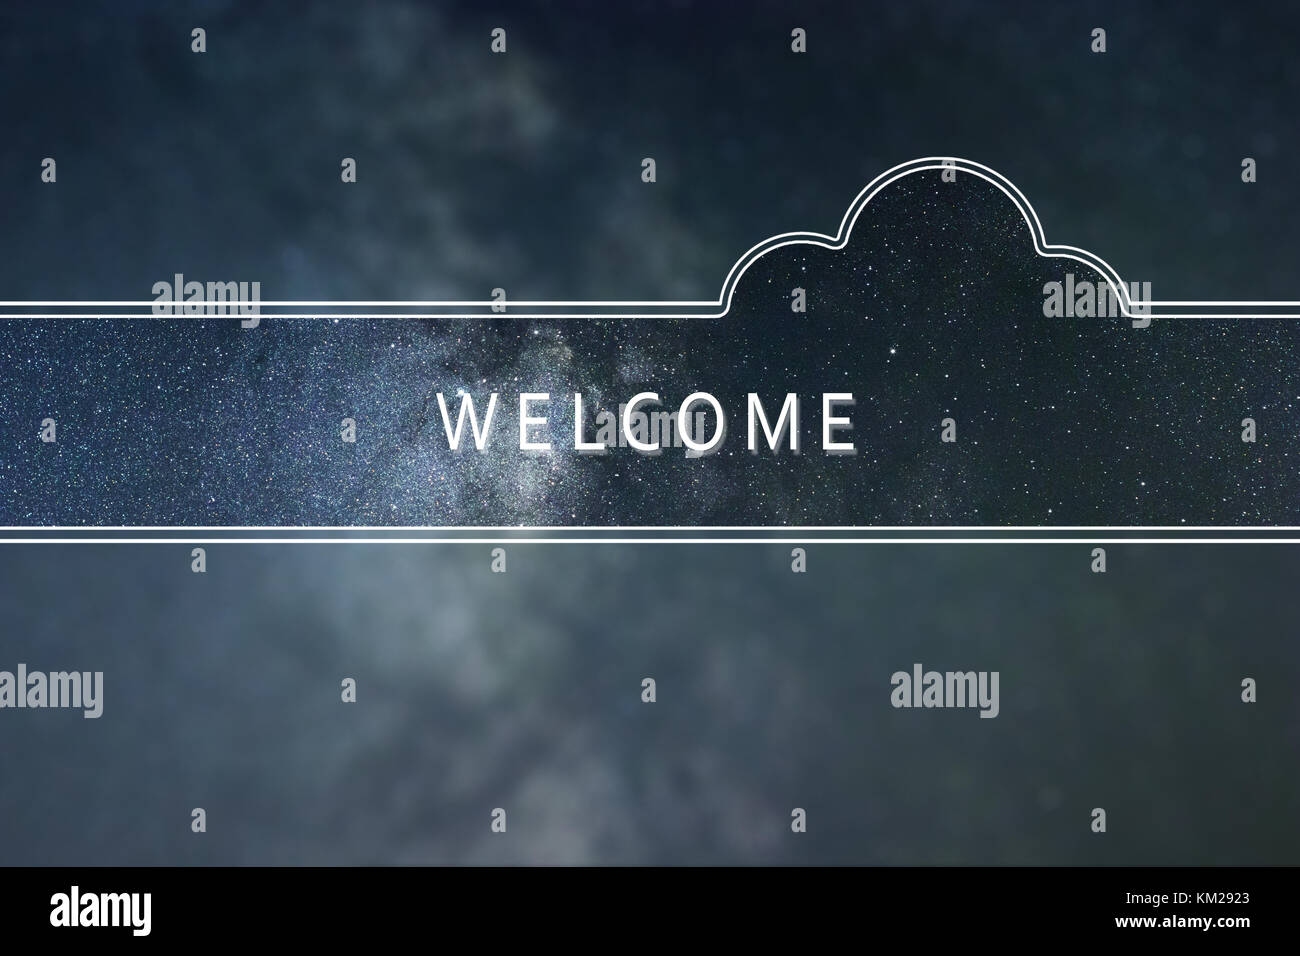 WELCOME Word Cloud Concept. Space background. - Stock Image